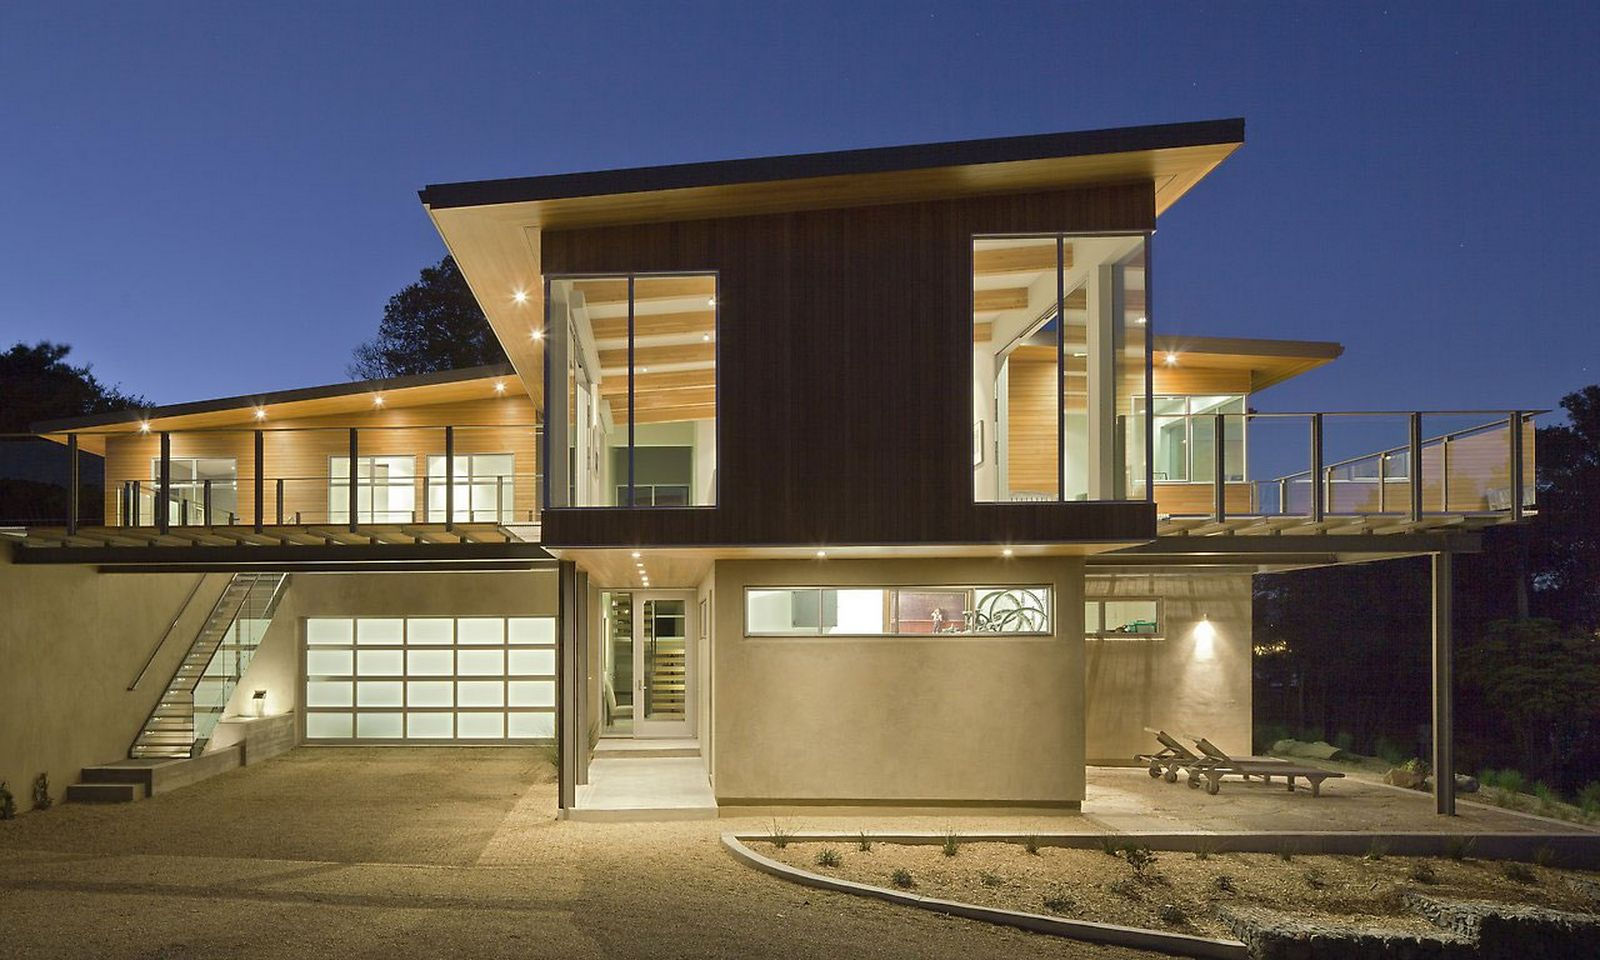 House Design Exterior 30 Contemporary Home Exterior Design Ideas